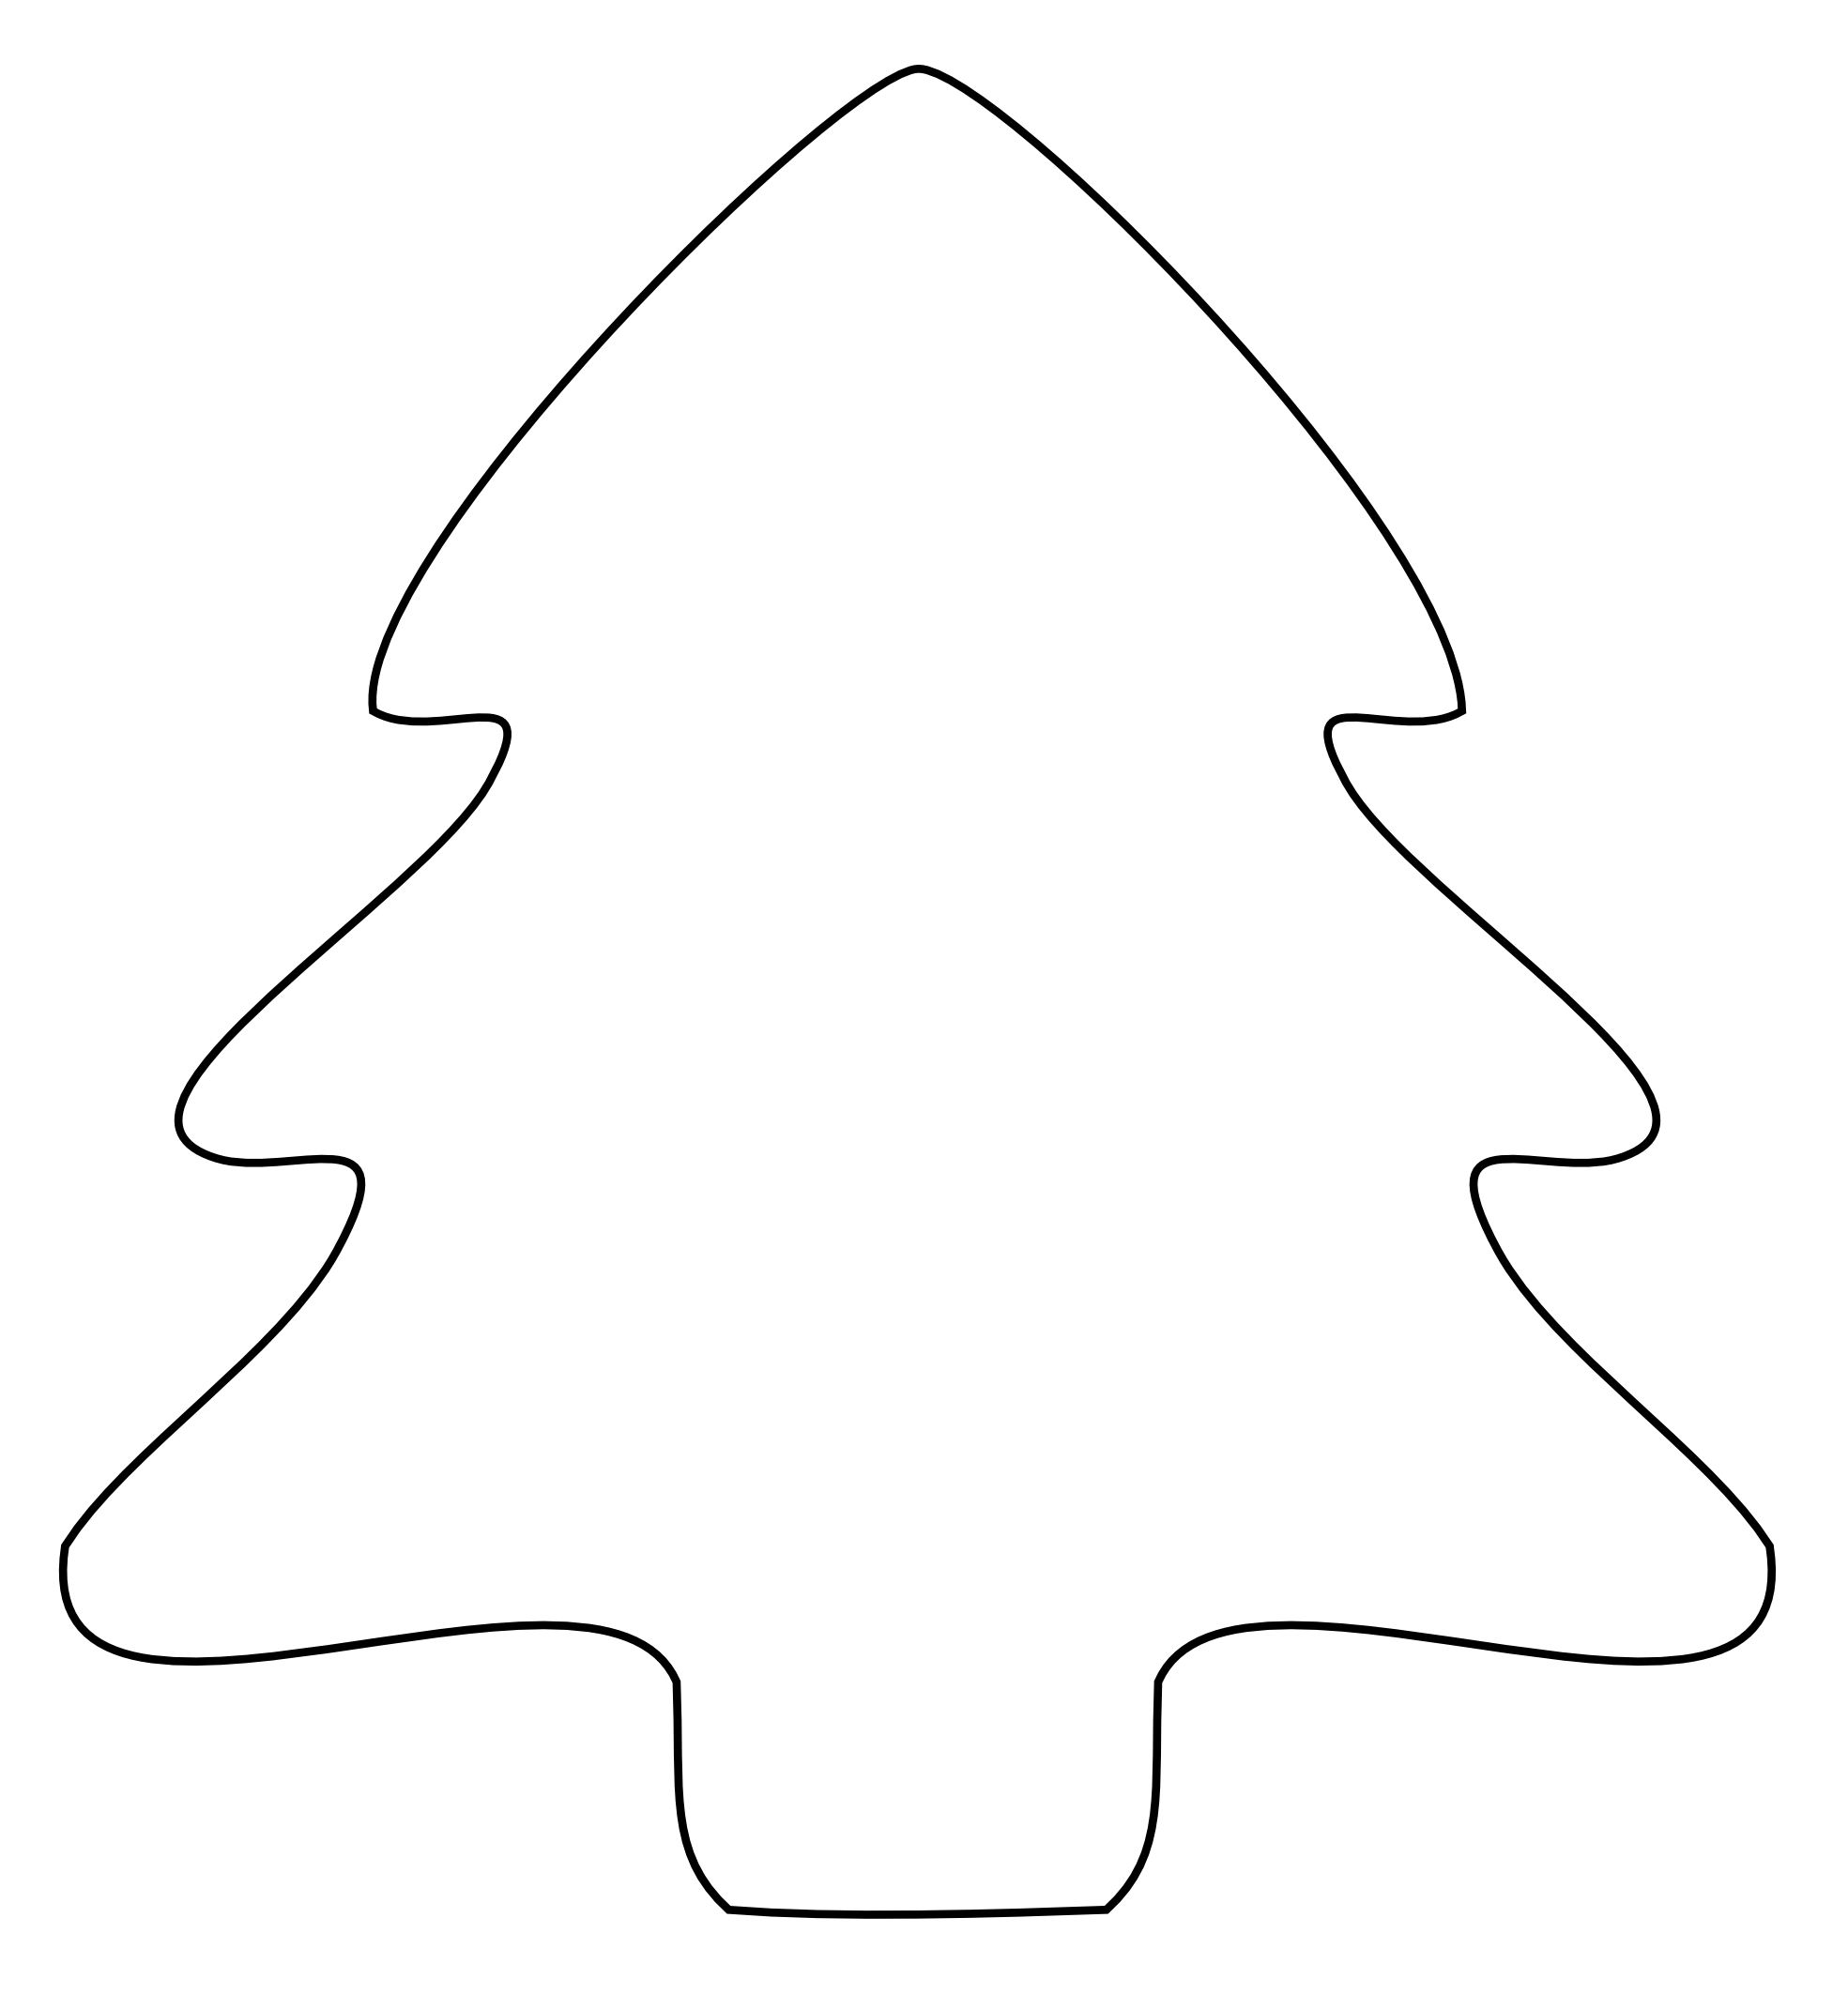 Xmas Stuff For > Christmas Tree Outline Clip Art